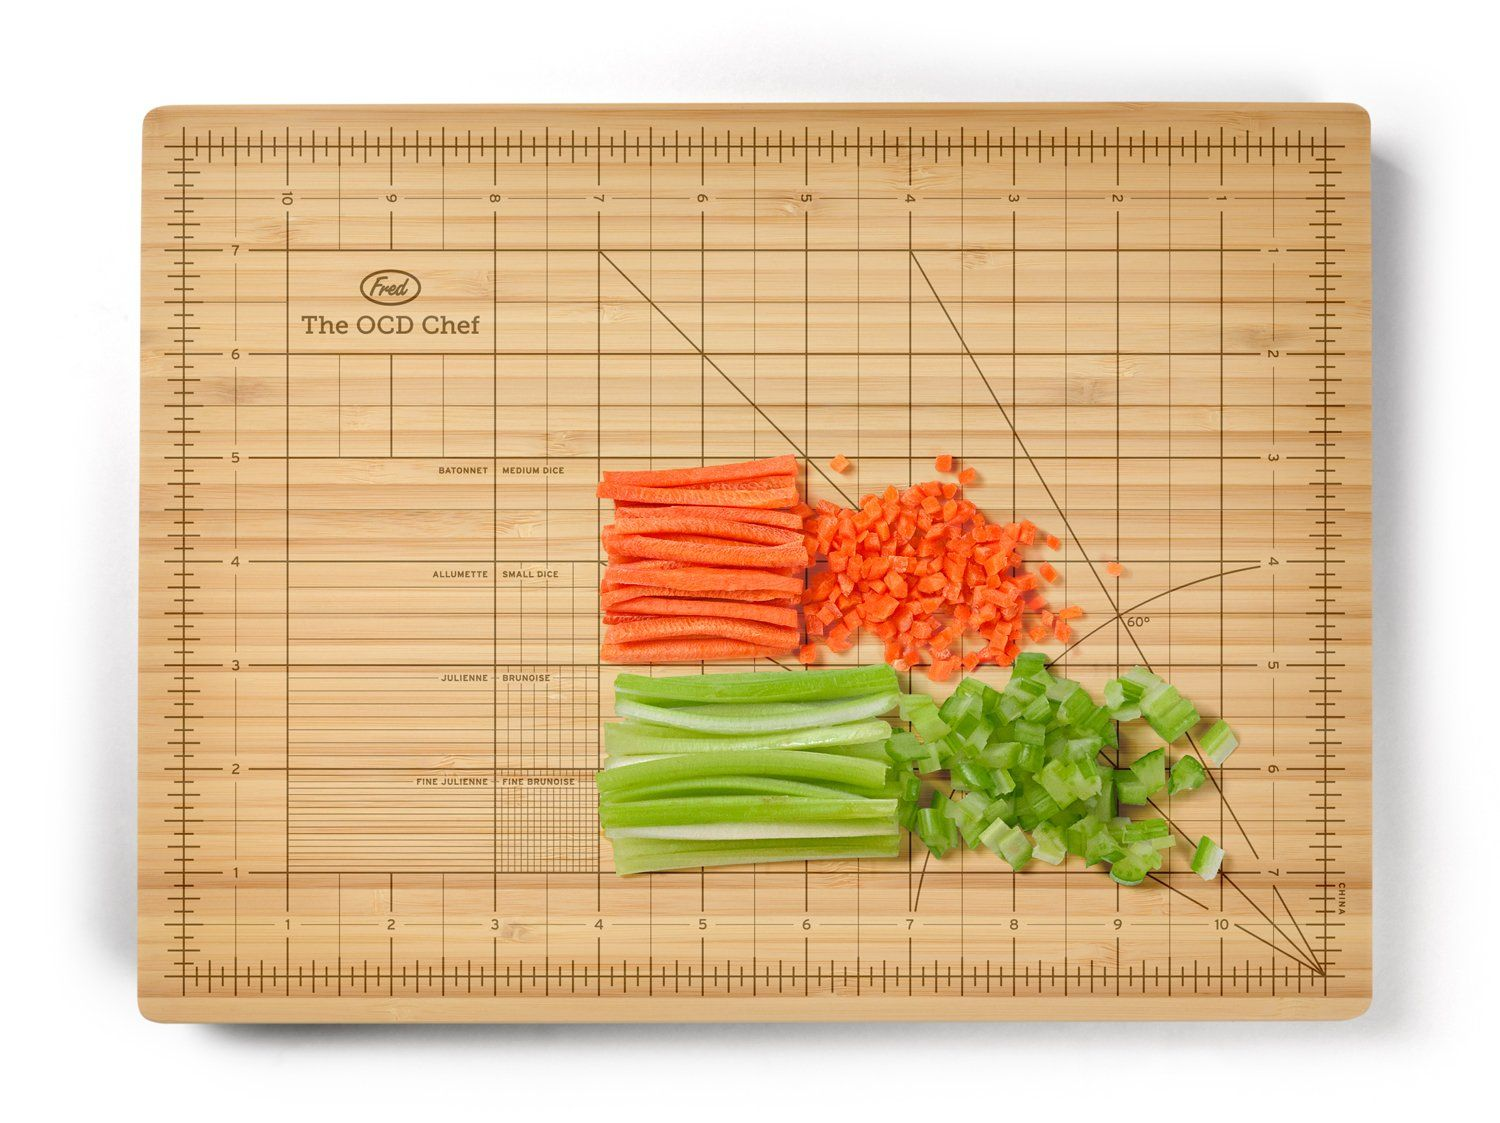 Amazon.com: Fred & Friends THE OBSESSIVE CHEF Bamboo Cutting Board, 9-inch by 12-inch: Obsessive Chef Cutting Board: Kitchen & Dining